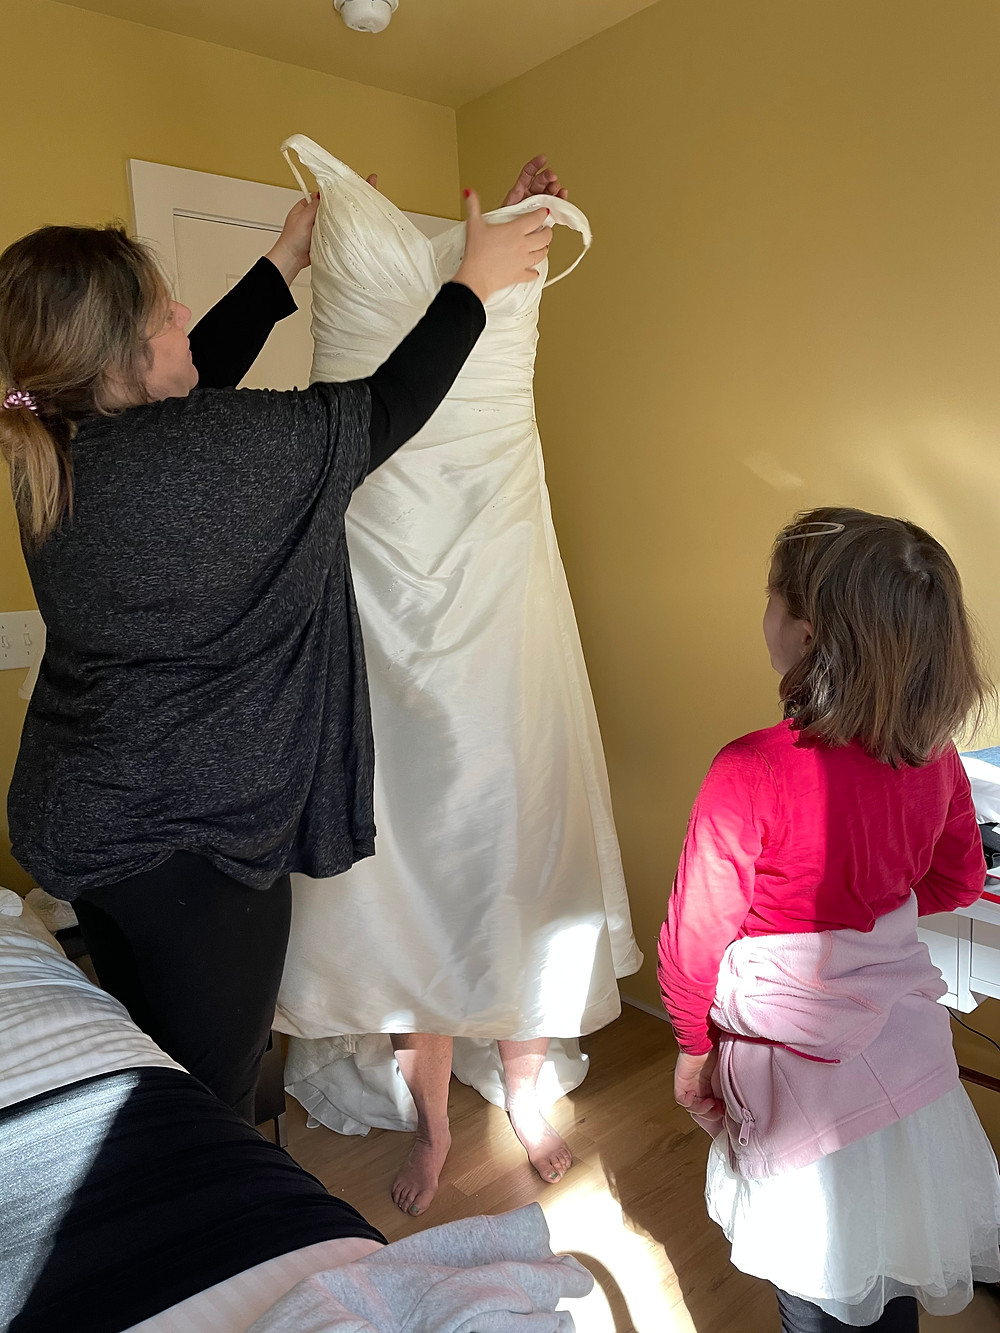 Venus Emerging: Jenna Alstad (l) helps Jane into the gown she wore at her wedding, with help from Baker Alstad (r)